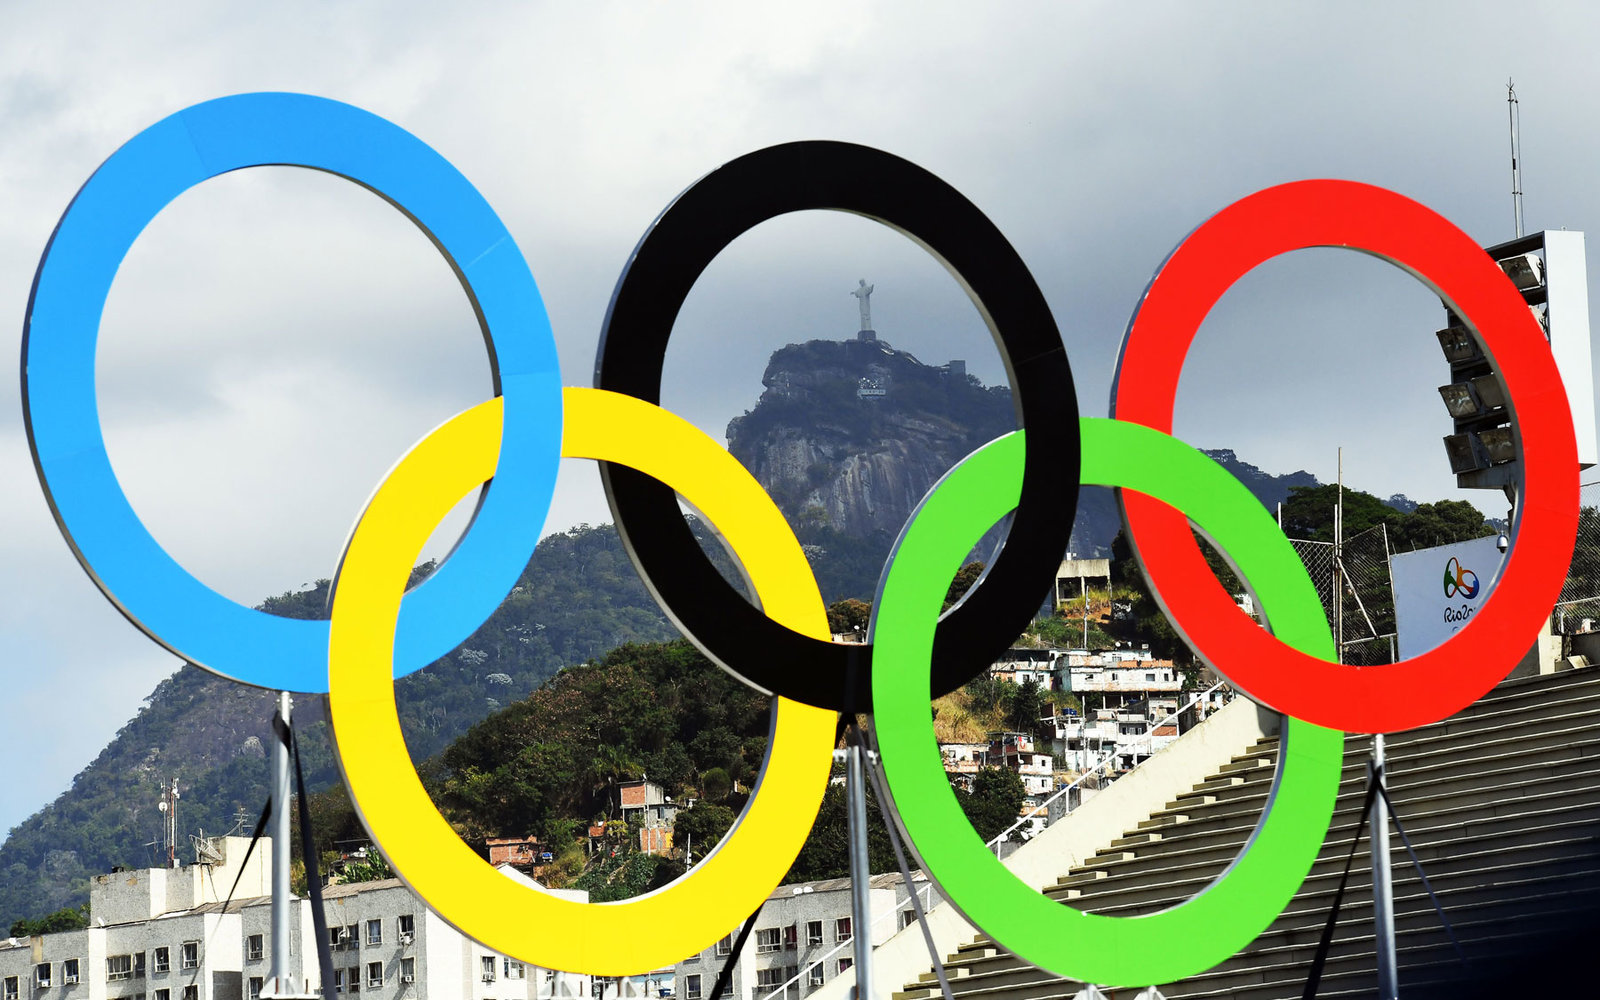 The Olympic rings in Rio de Janeiro.